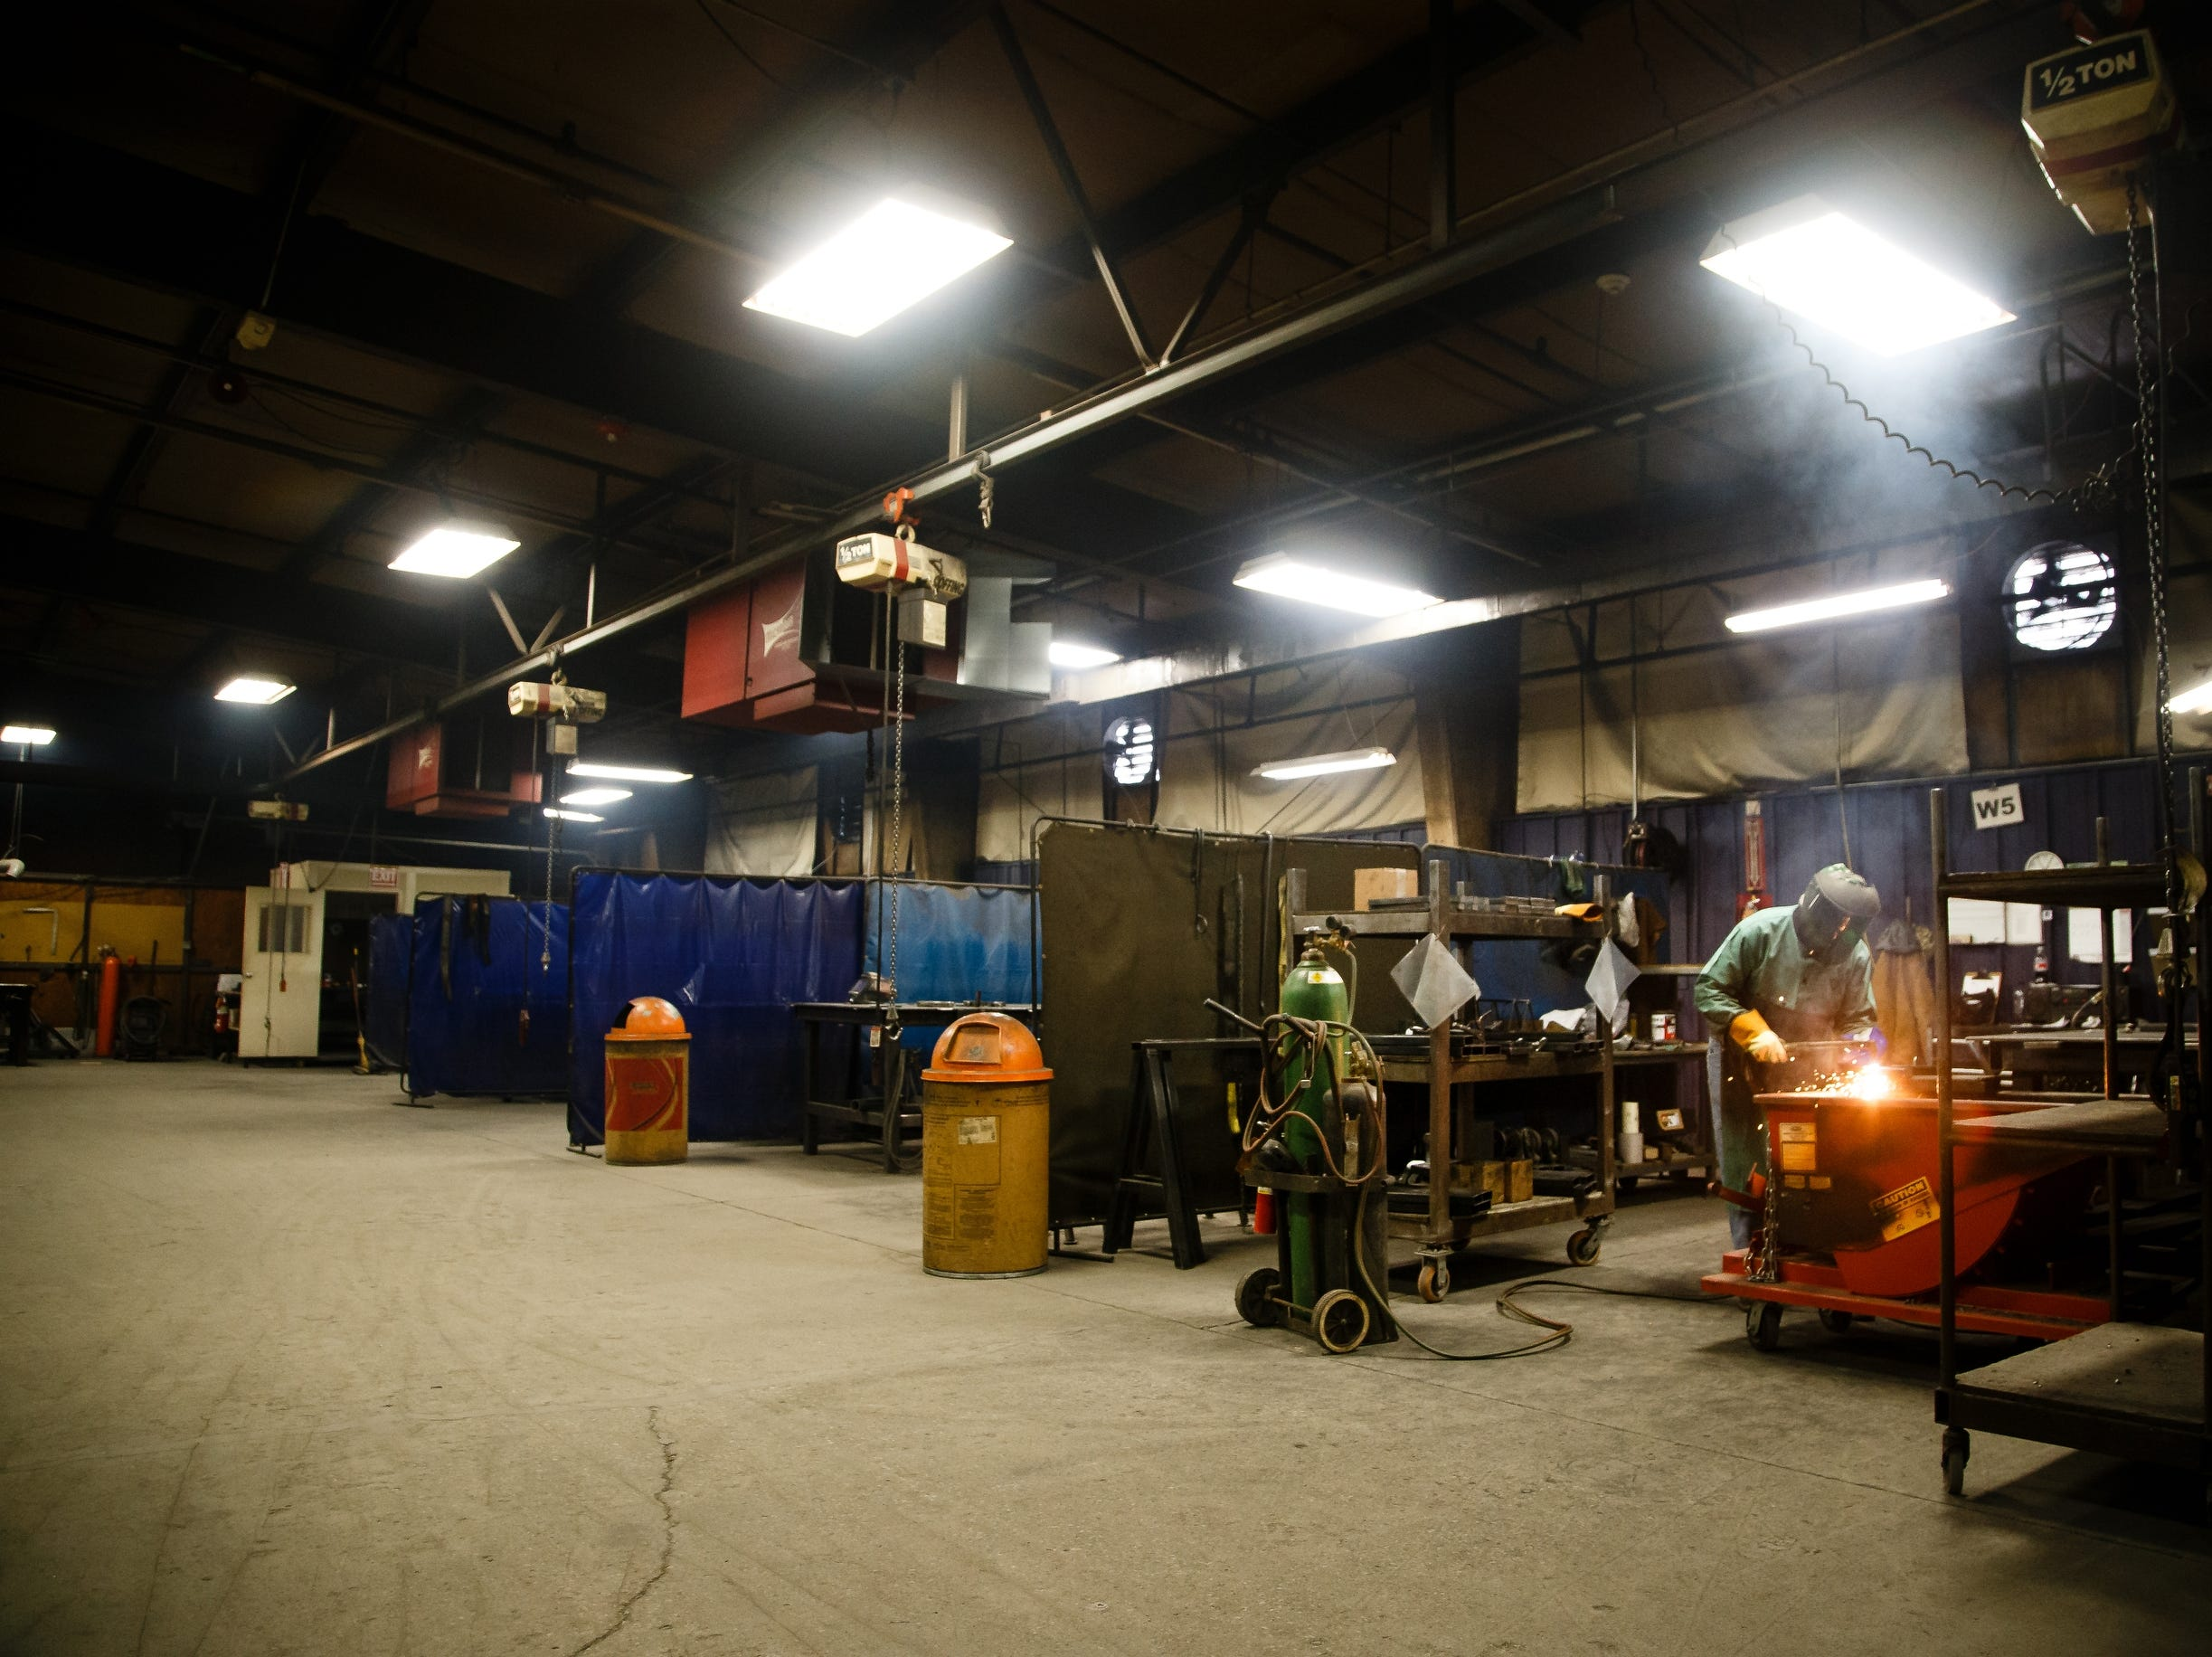 Employees at AAI work at the companies facility in Jefferson on Wednesday, March 13, 2019. AAI is the official supplier of basketball back stops for NBA, NCAA, WNBA and the NBA G-League. They make all their products, as well as a full line of gymnastics and tumbling equipment out of this factory in Jefferson where they were founded.